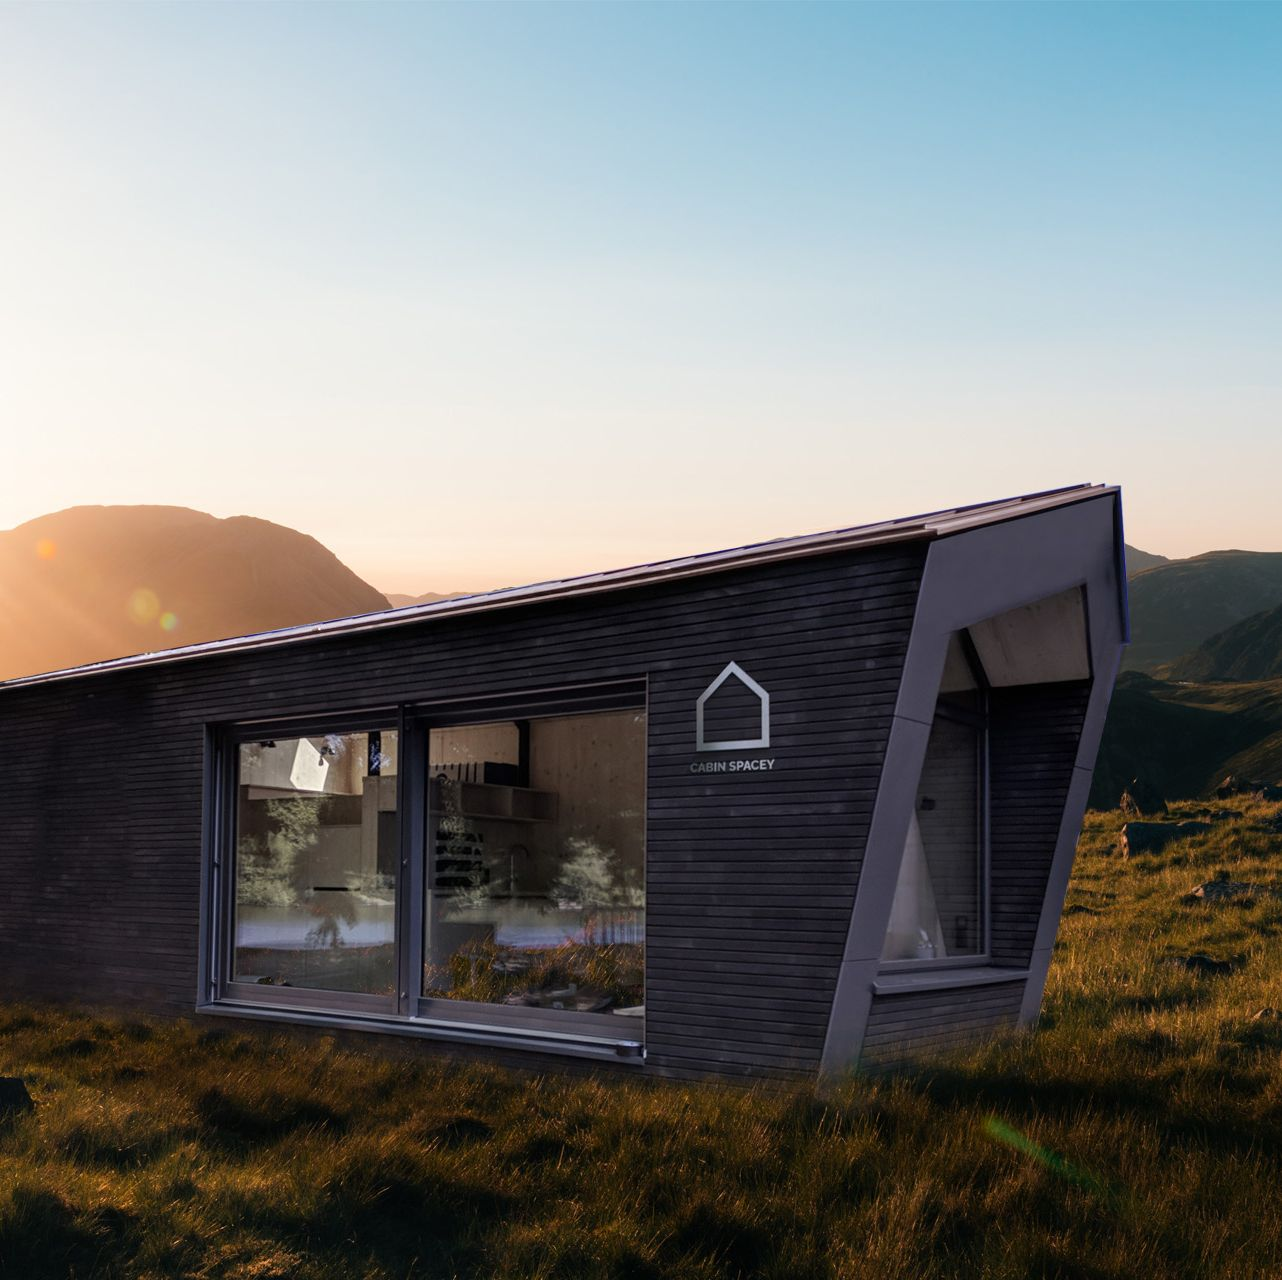 These Tiny Homes Are Designed to Be Easily Moved Anywhere—Even on Rooftops